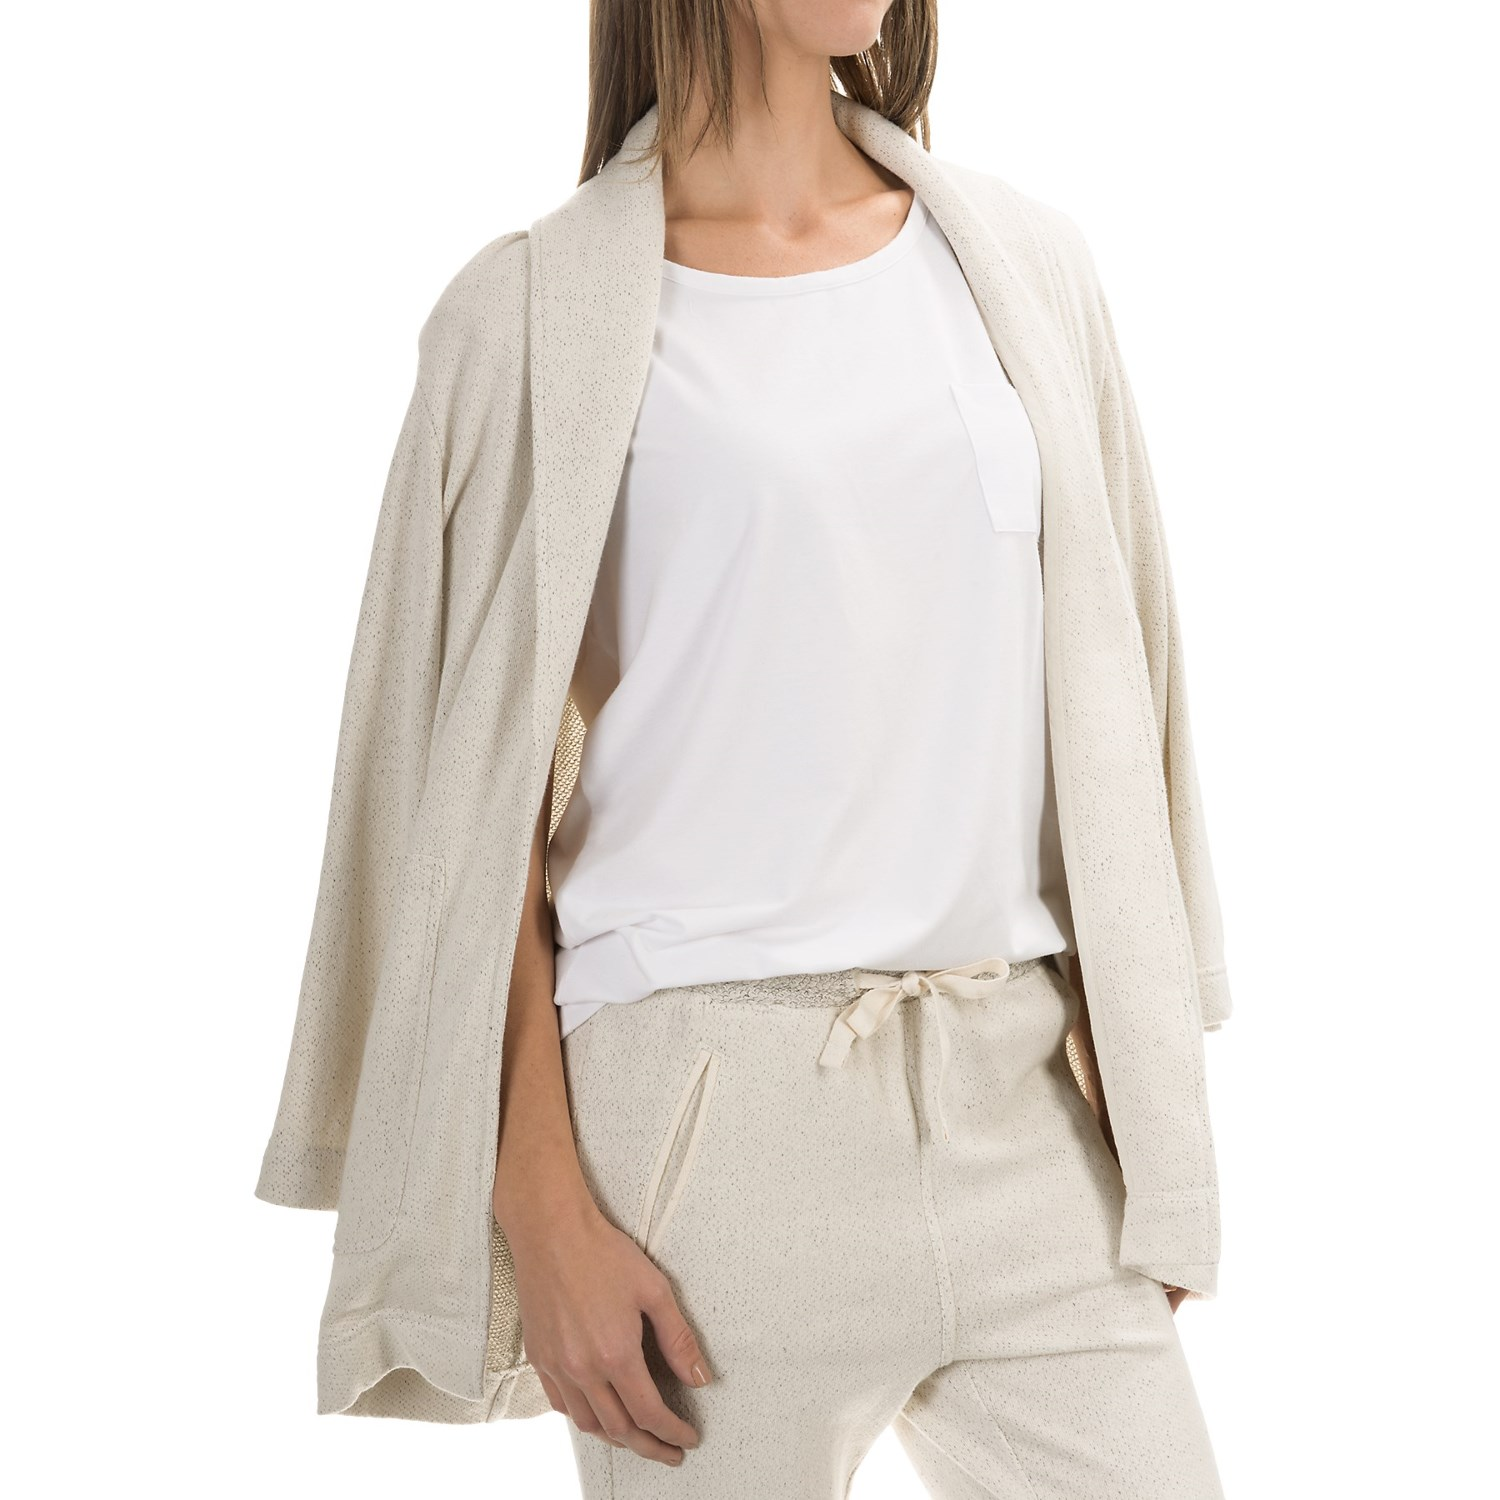 Cardigans & Shrugs for Women. Belk carries a huge selection of cardigans for women who love to layer on the style. Choose from an array of long sleeve cardigans to keep you warm and cozy, and browse shrug sweaters for a lightweight option in warmer weather.